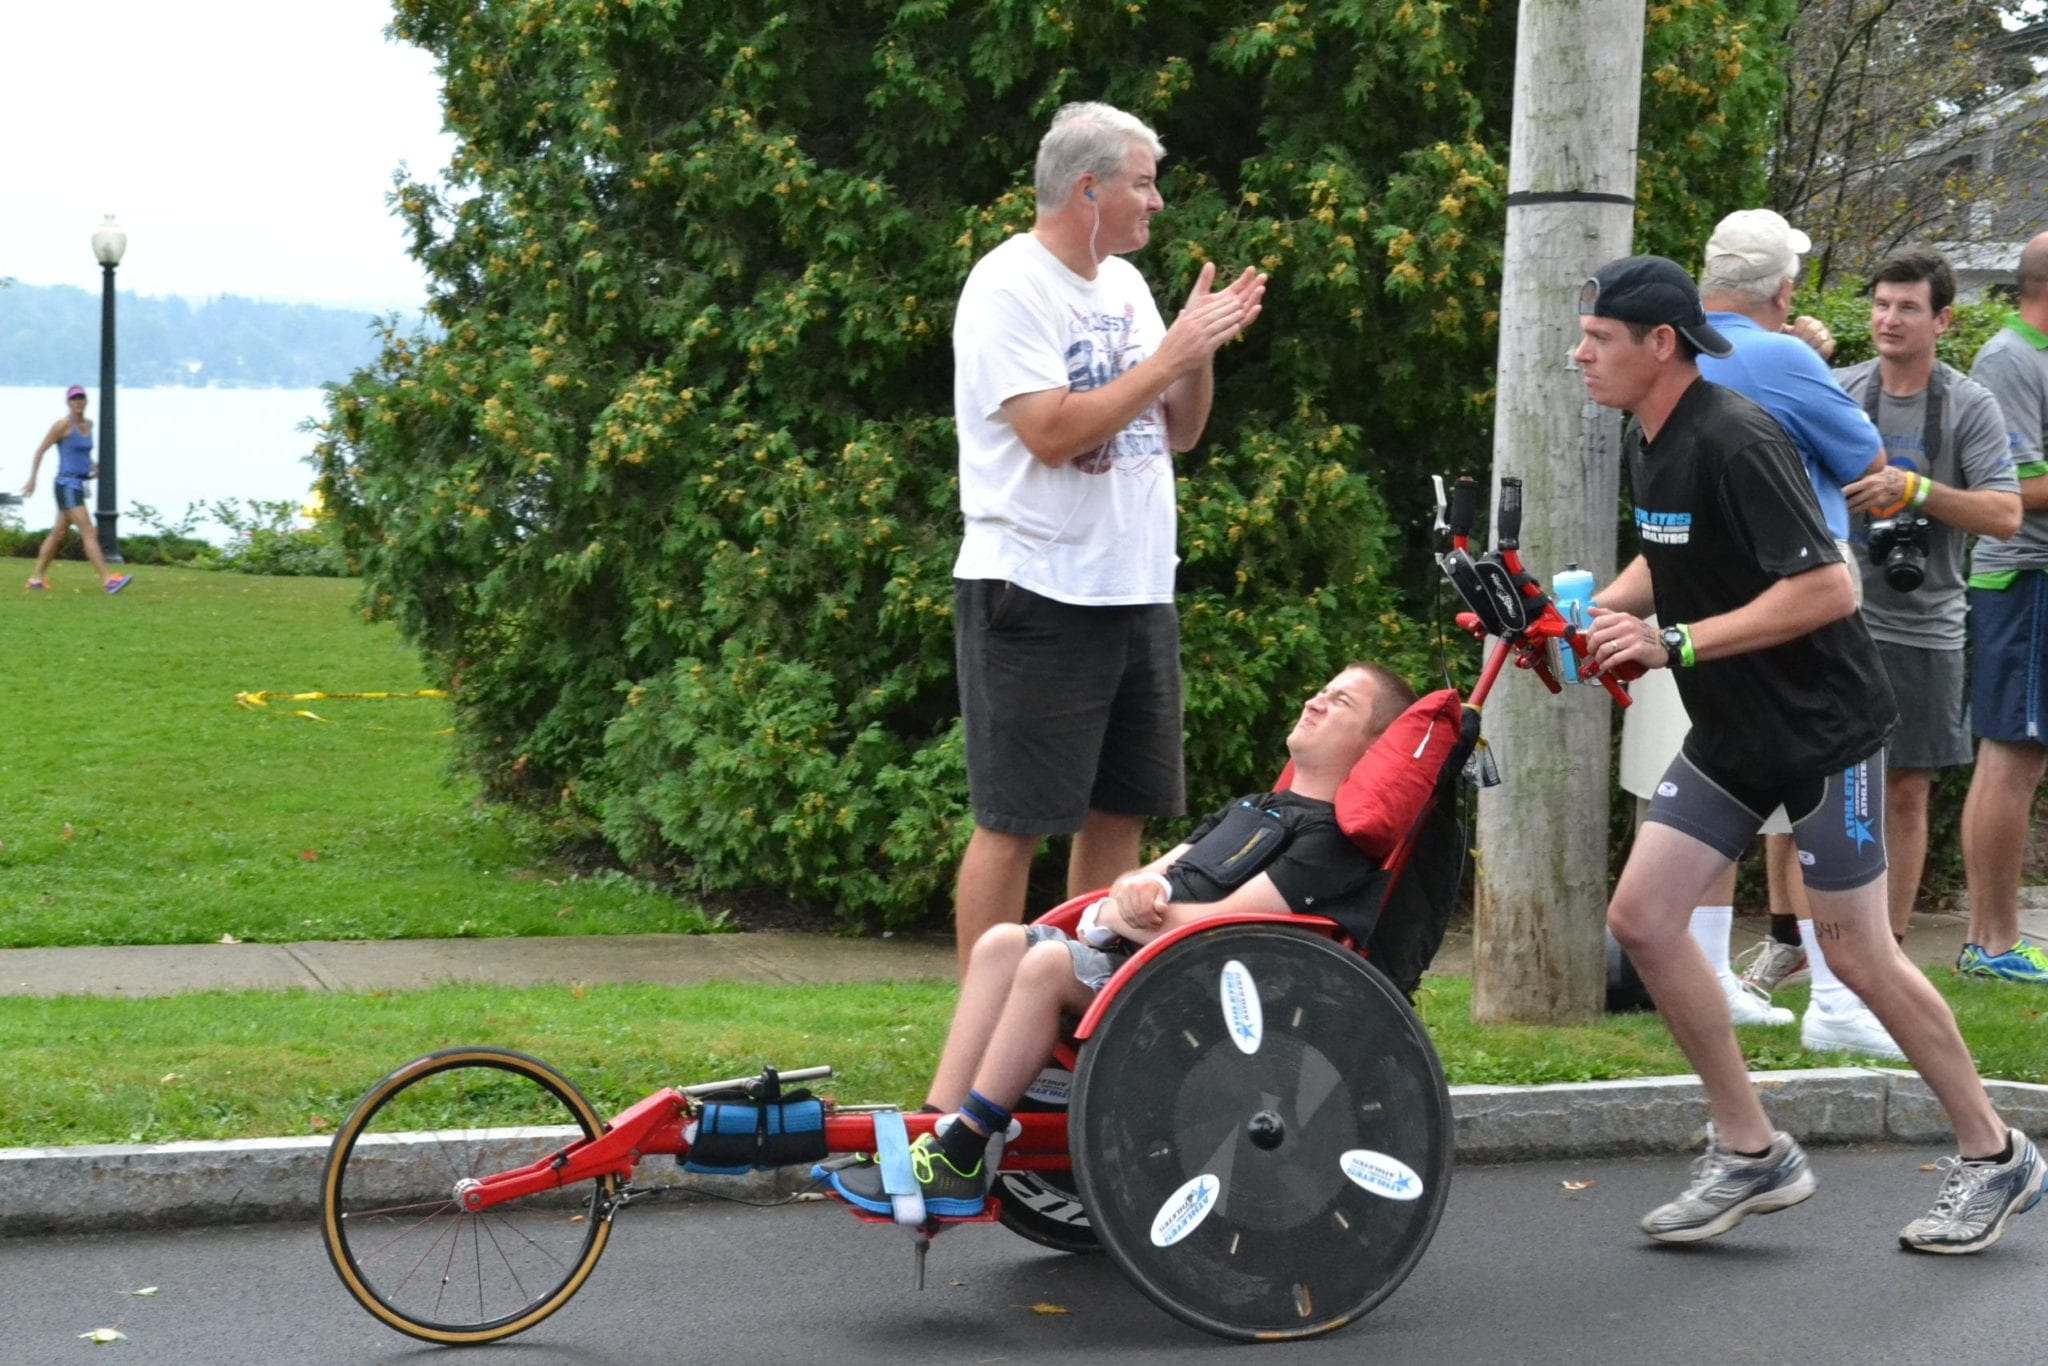 Disabled youth compete in Skinnyman triathlon